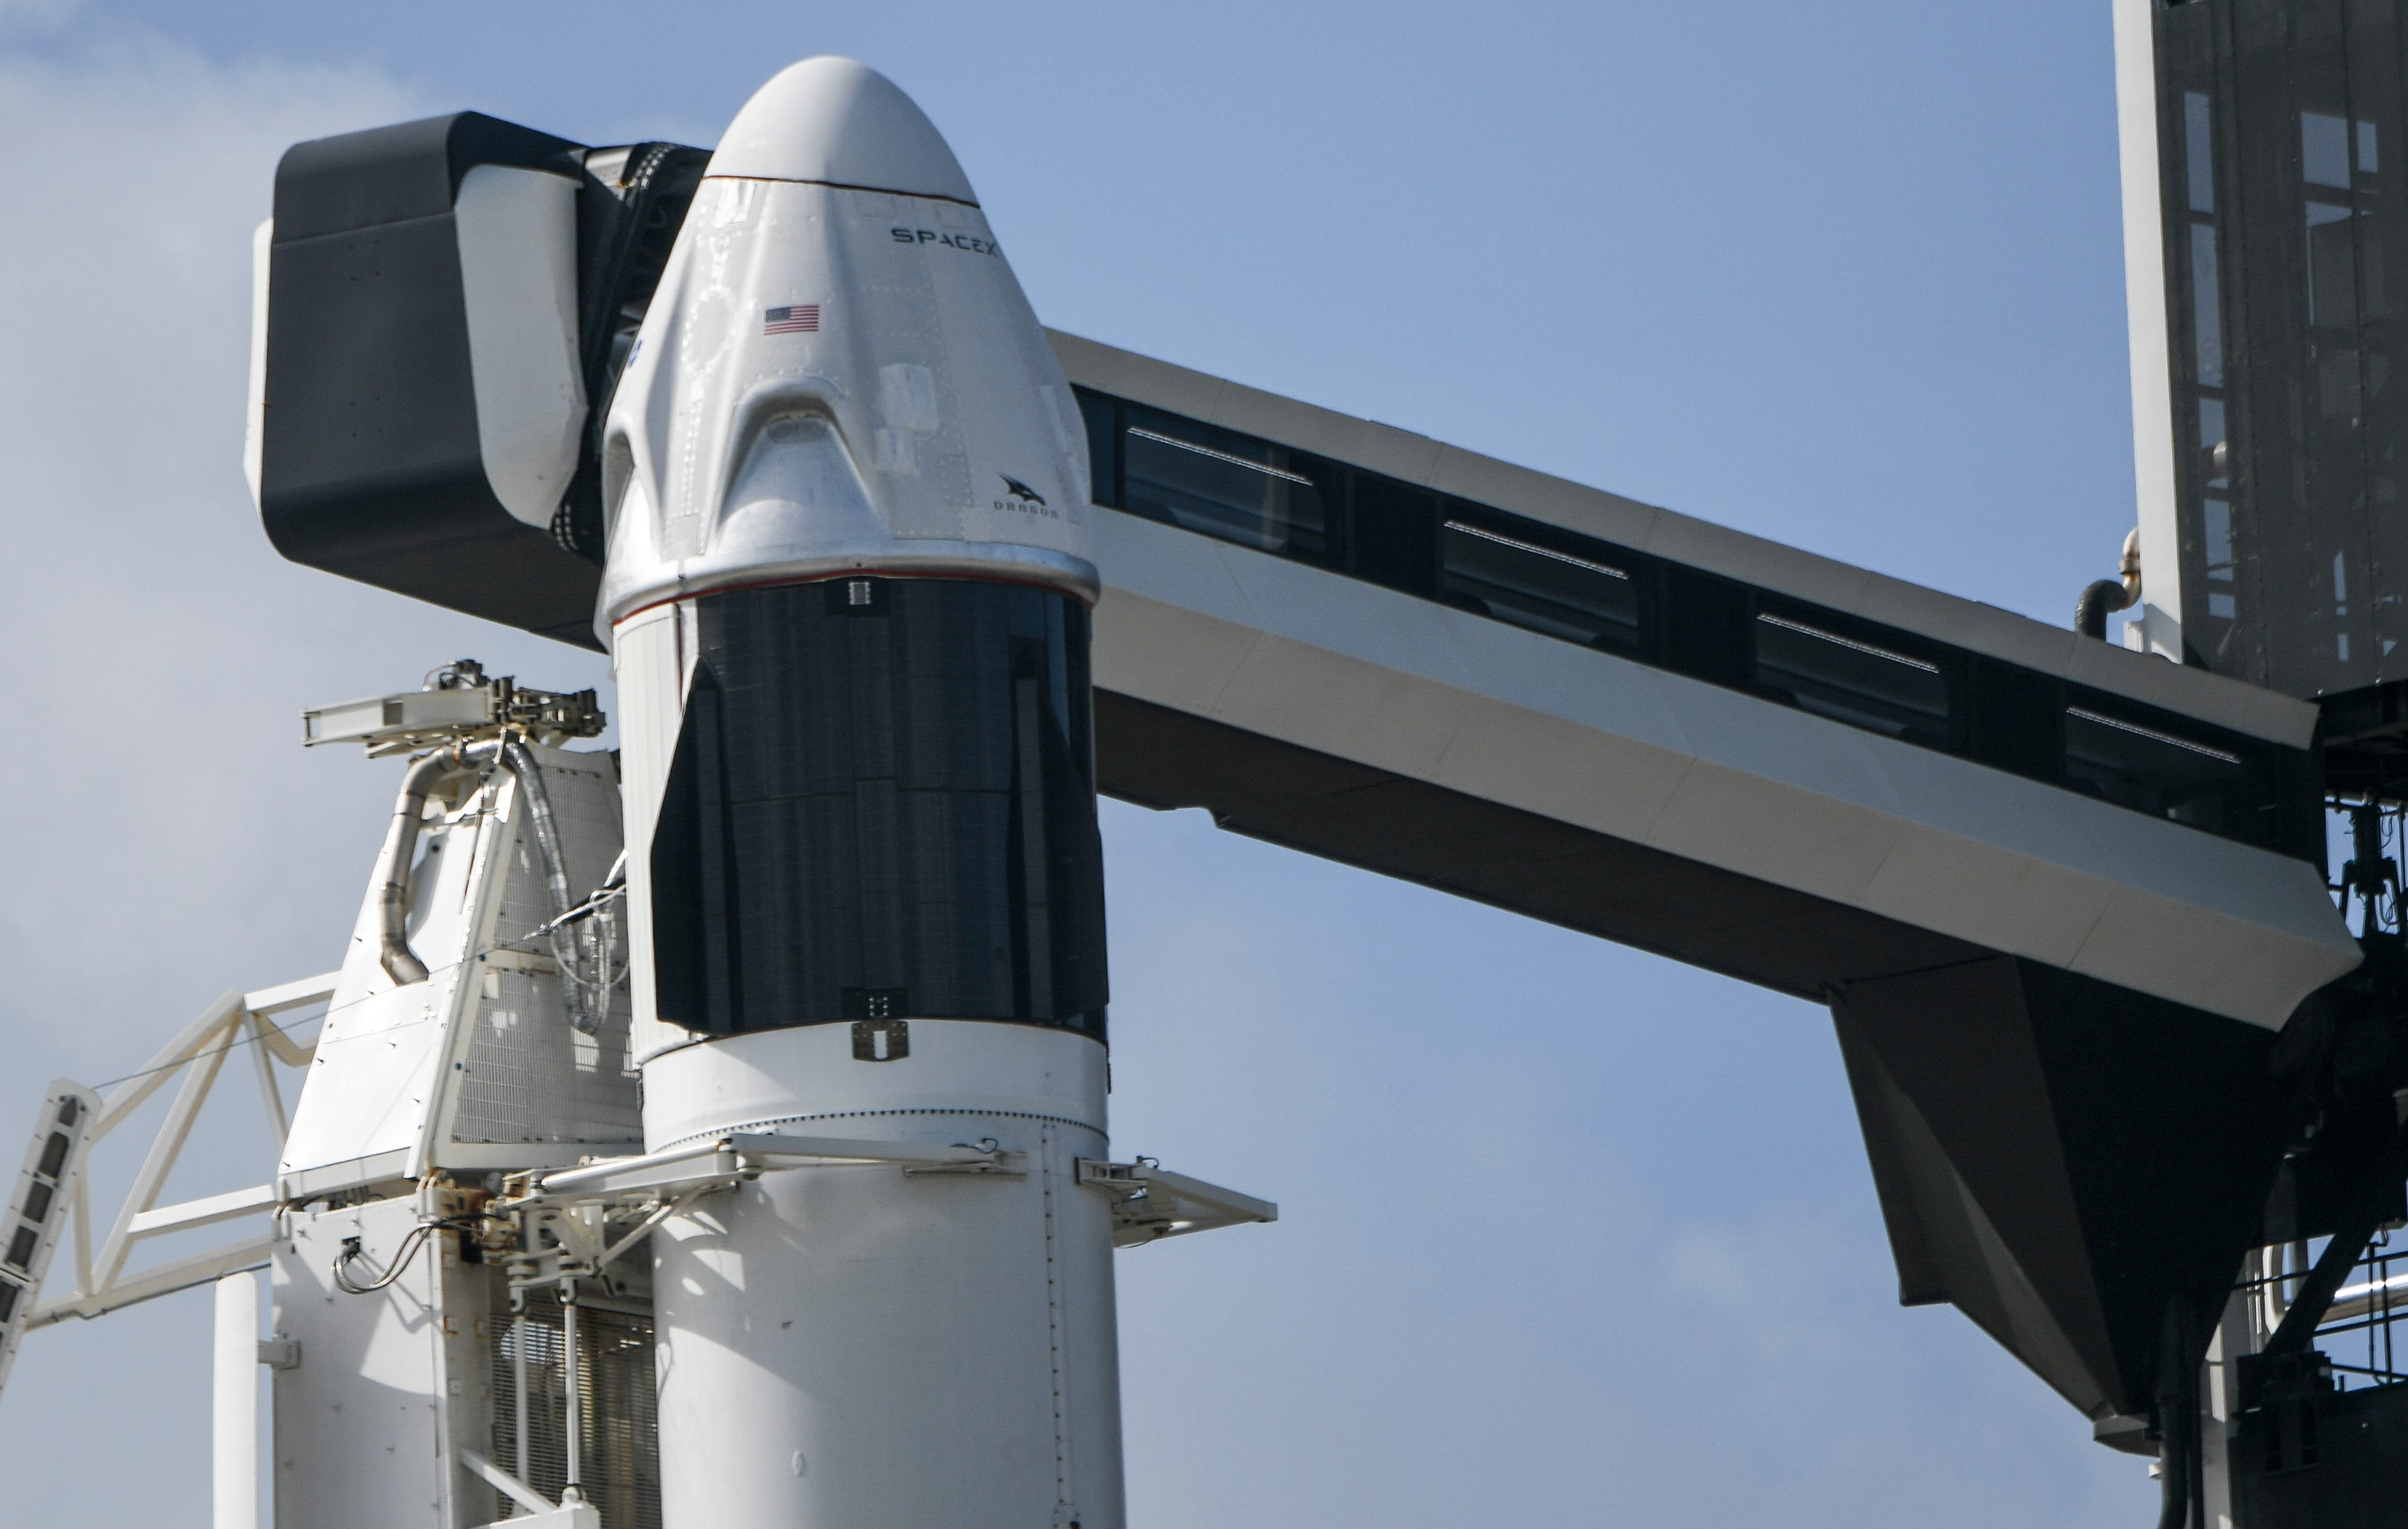 SpaceX signs agreement to fly private customers on Crew Dragon spacecraft